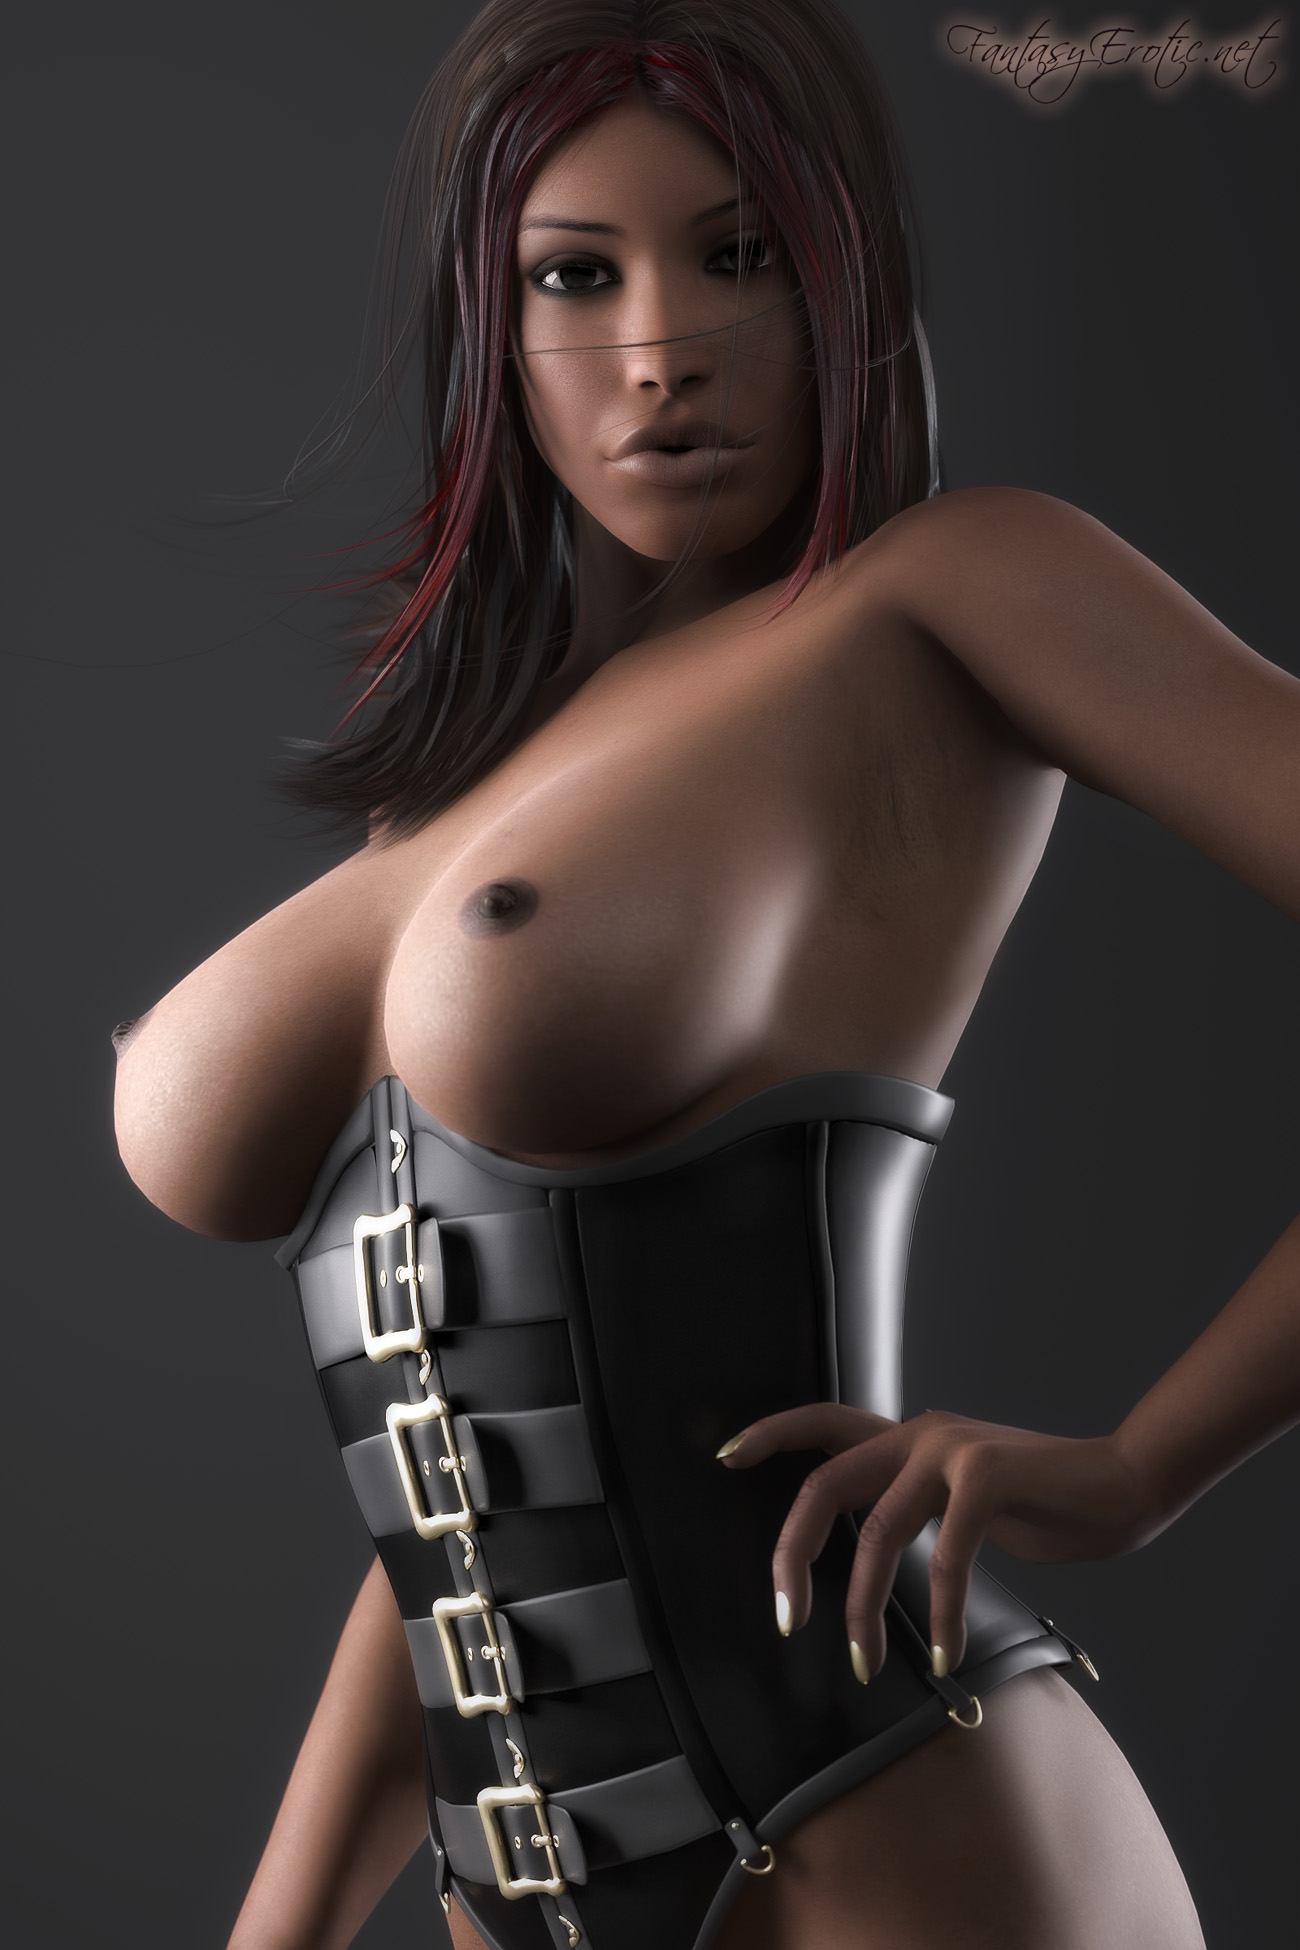 Tits Sey Portrait Pinup Nude Late Fetish Erotic Ebony Corset Breasts